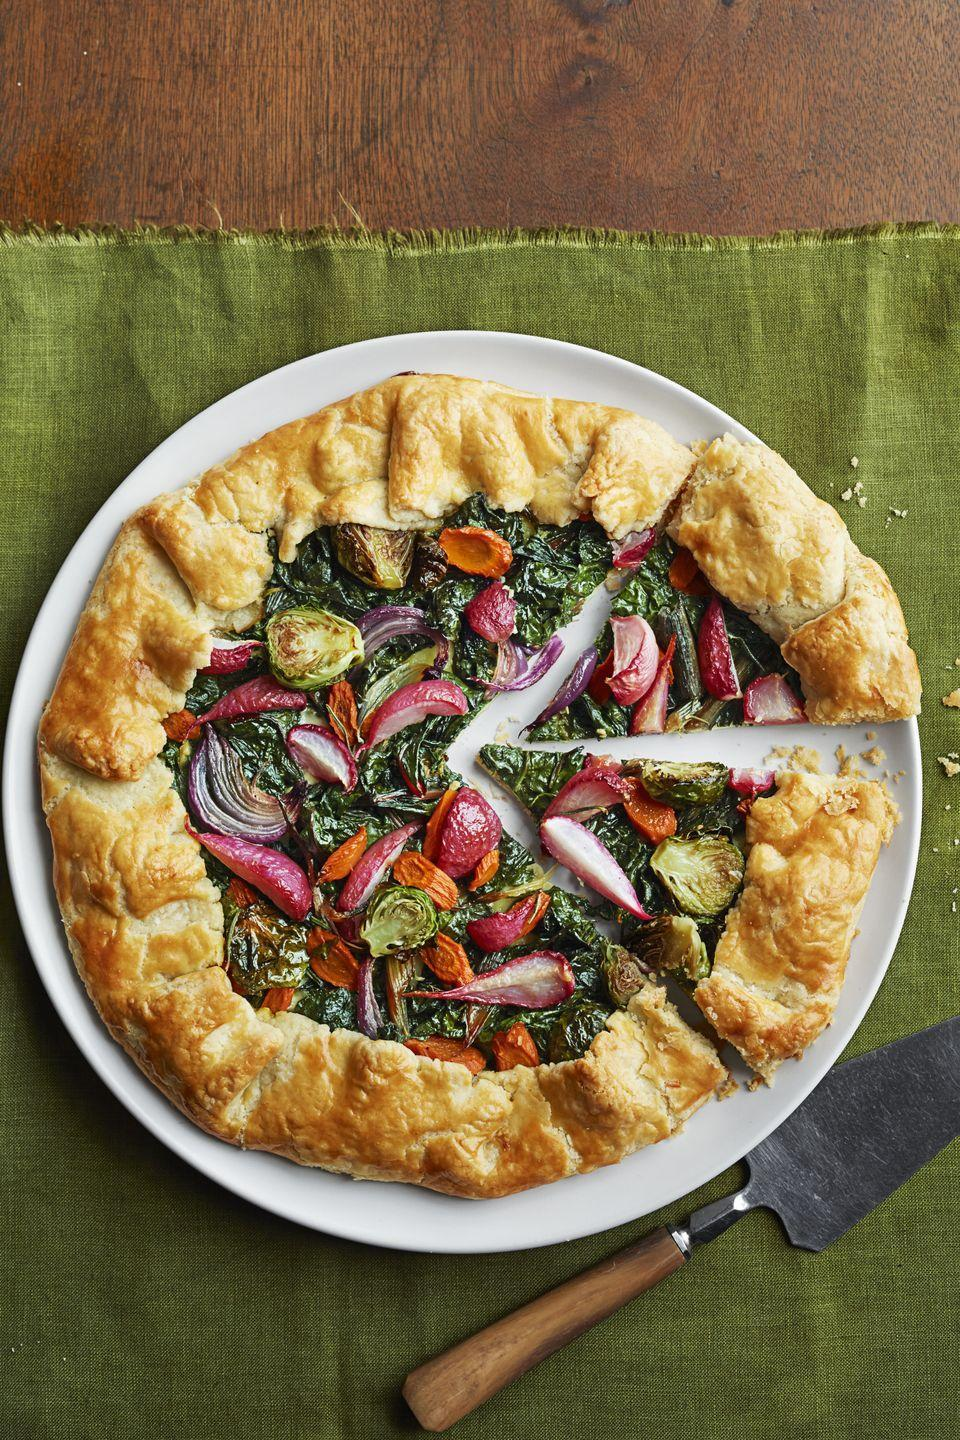 "<p>It's almost like having pie for dinner ... but, instead of caramelized fruits, there are sprouts, Swiss chard, onions and carrots piled atop that buttery crust. </p><p><a href=""https://www.goodhousekeeping.com/food-recipes/a16046/winter-veggie-tarts-recipe-ghk1214/"" rel=""nofollow noopener"" target=""_blank"" data-ylk=""slk:Get the recipe for Winter Veggie Tarts »"" class=""link rapid-noclick-resp""><em>Get the recipe for Winter Veggie Tarts »</em></a> </p>"